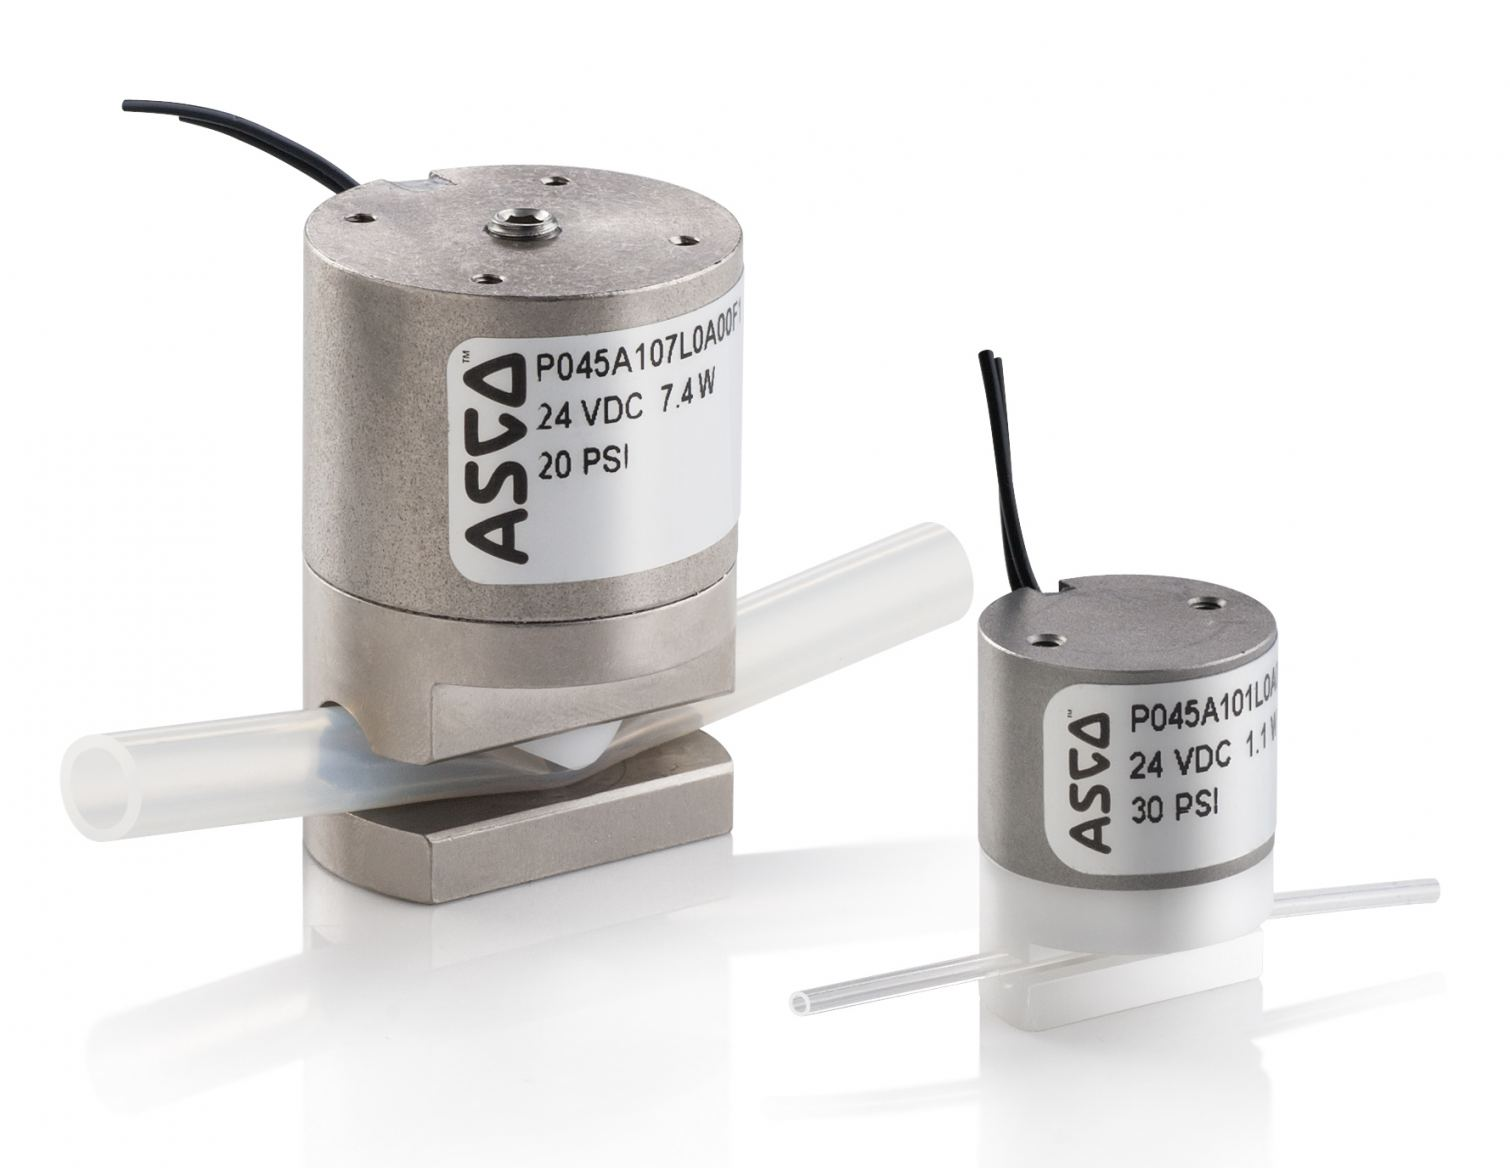 ASCO 045 Series Pinch Valves with Low Heat Transfer to Protect Liquid Media